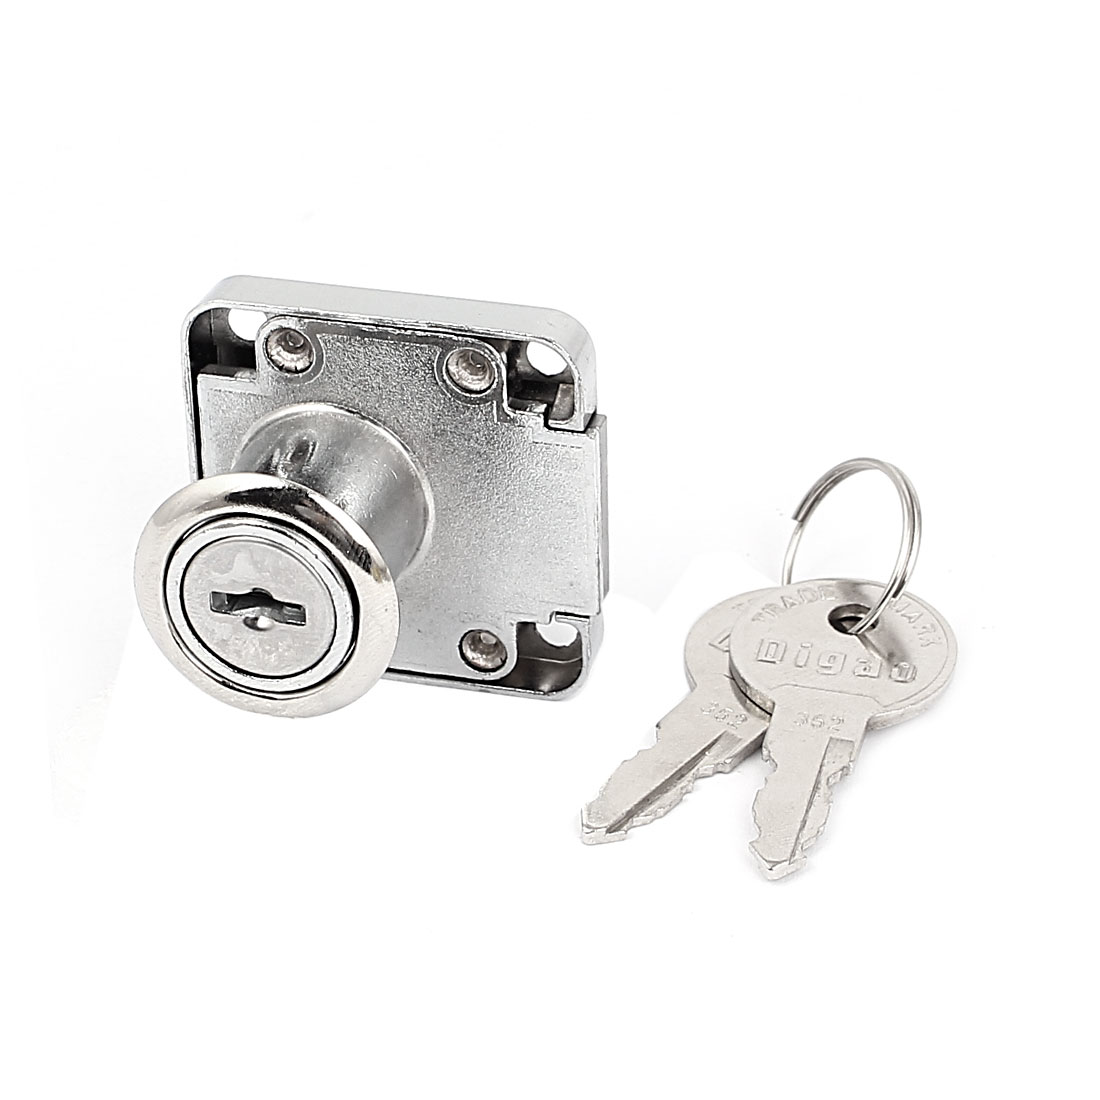 28mm High Cabinet Toolbox Cupboard Security Zinc Alloy Door Lock w 2 Keys